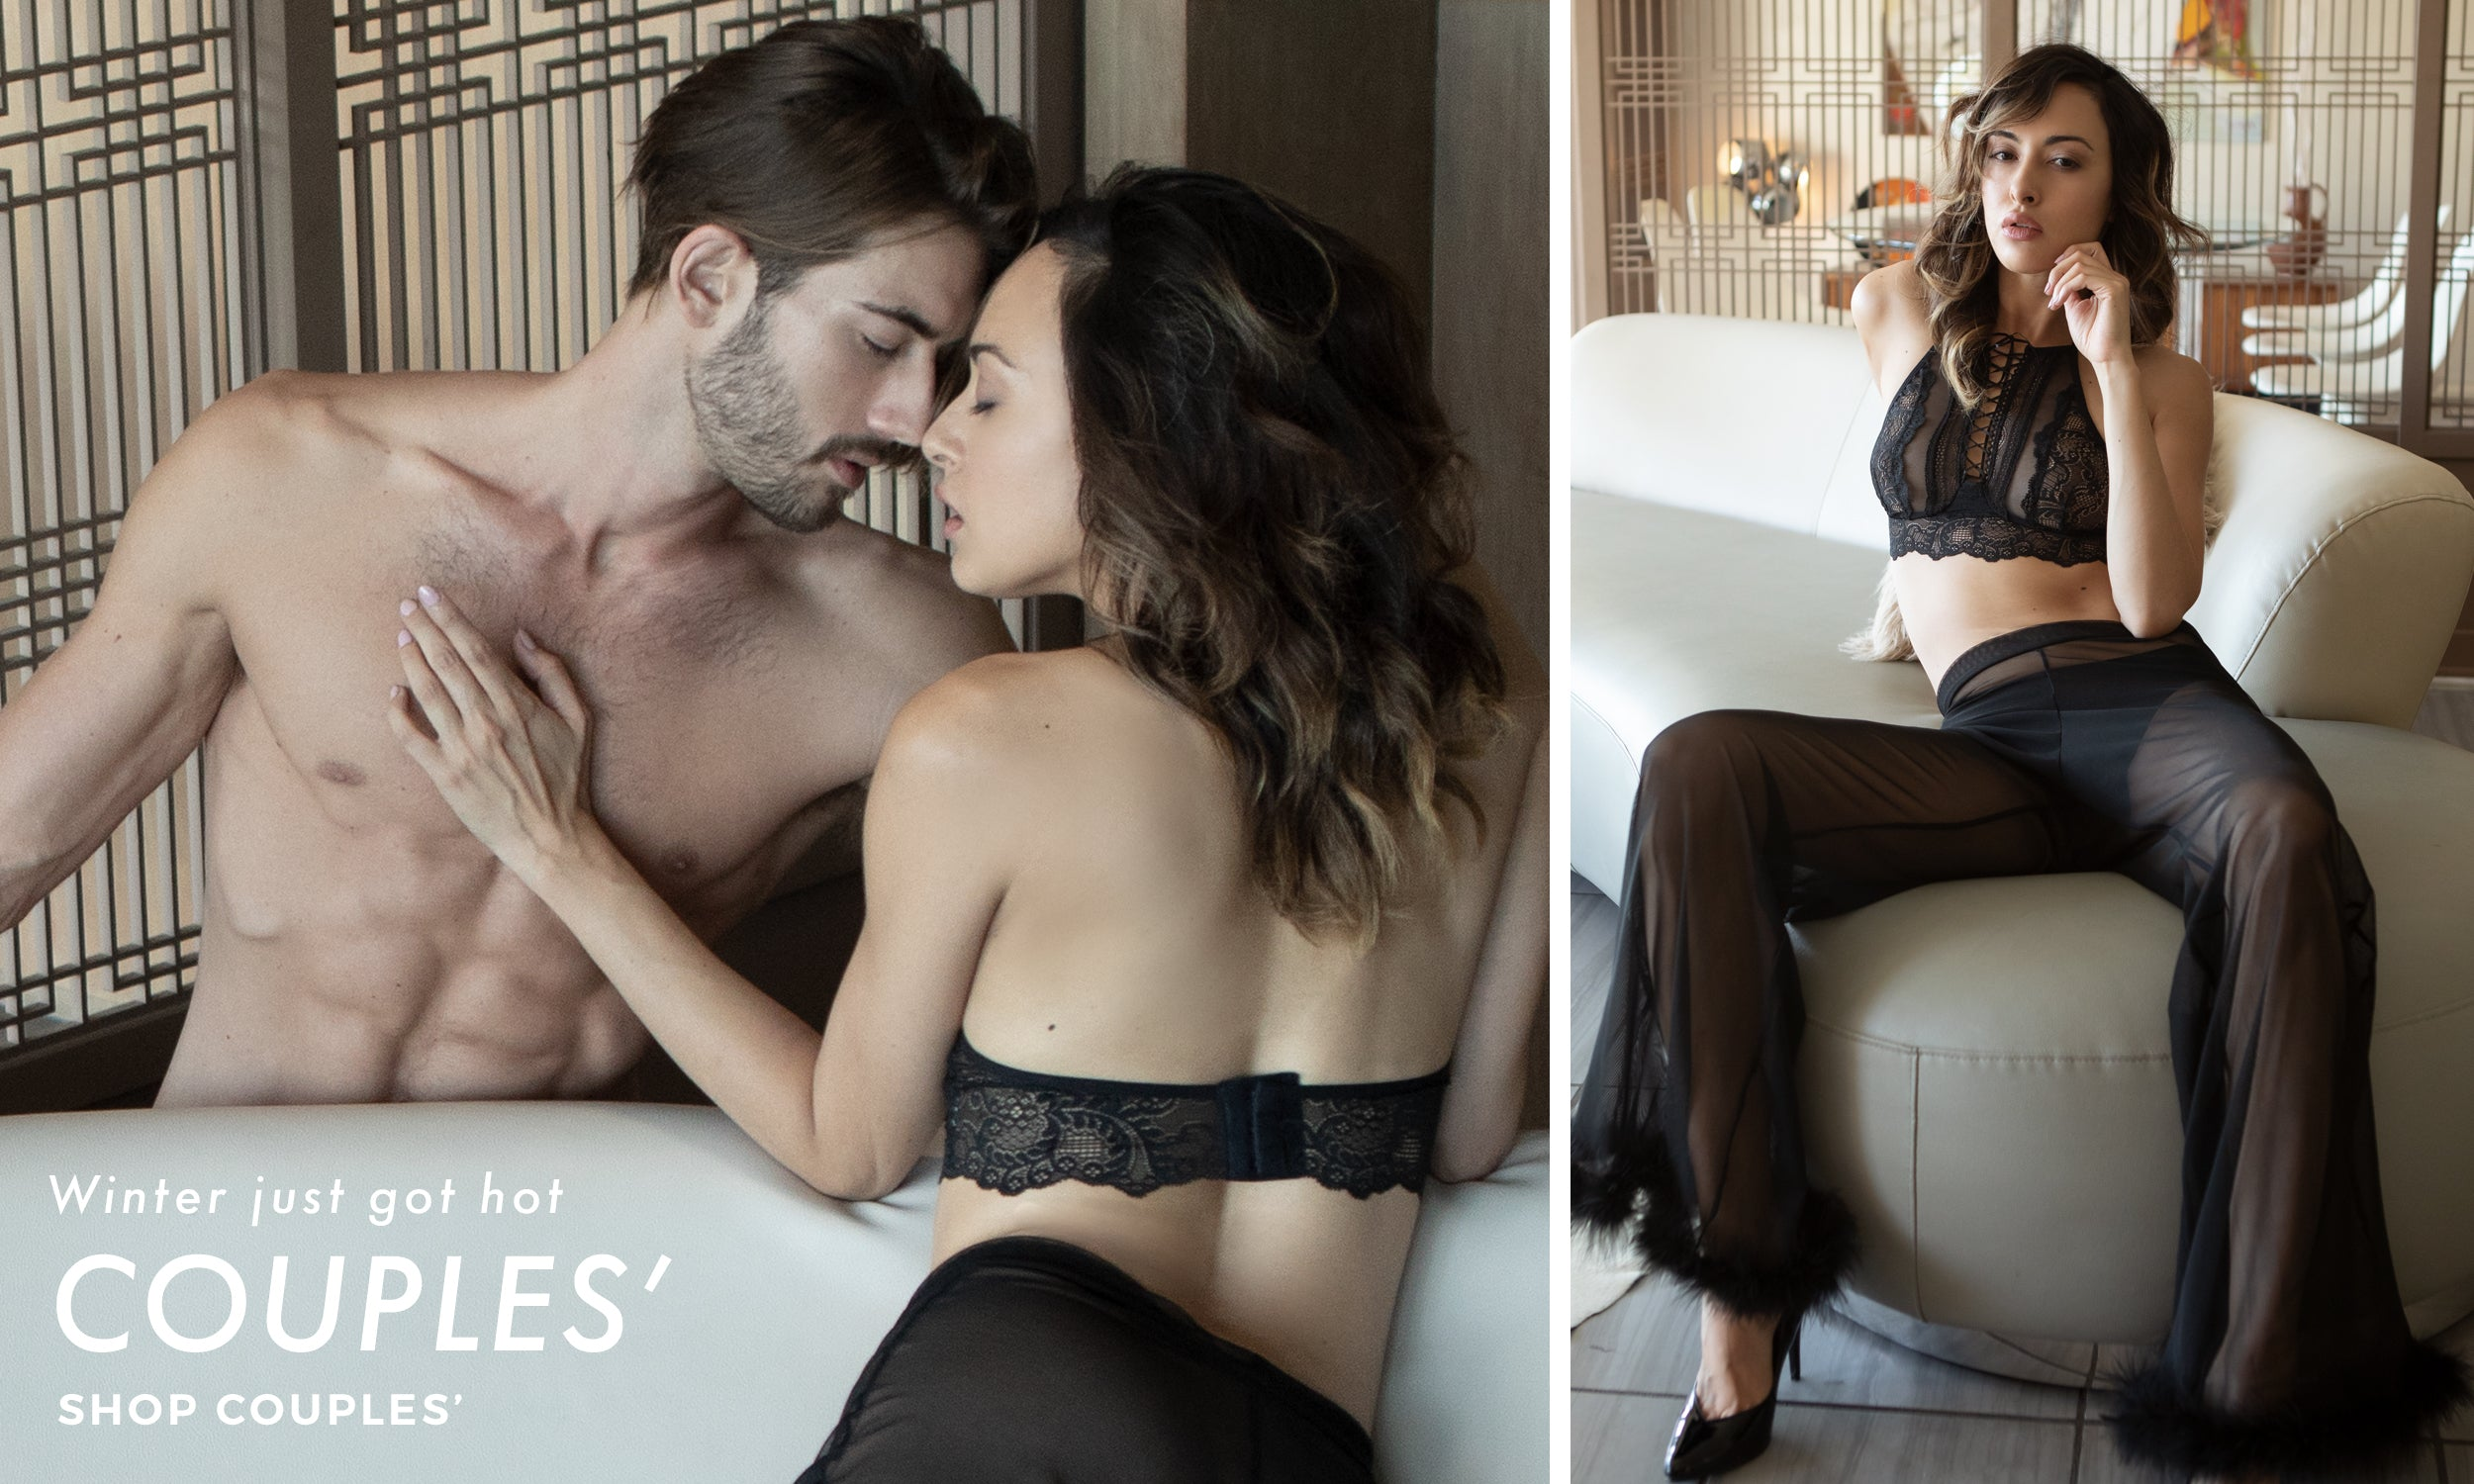 Shop Sexy Hoilday Gifts for Couples at Hustler Hollywood